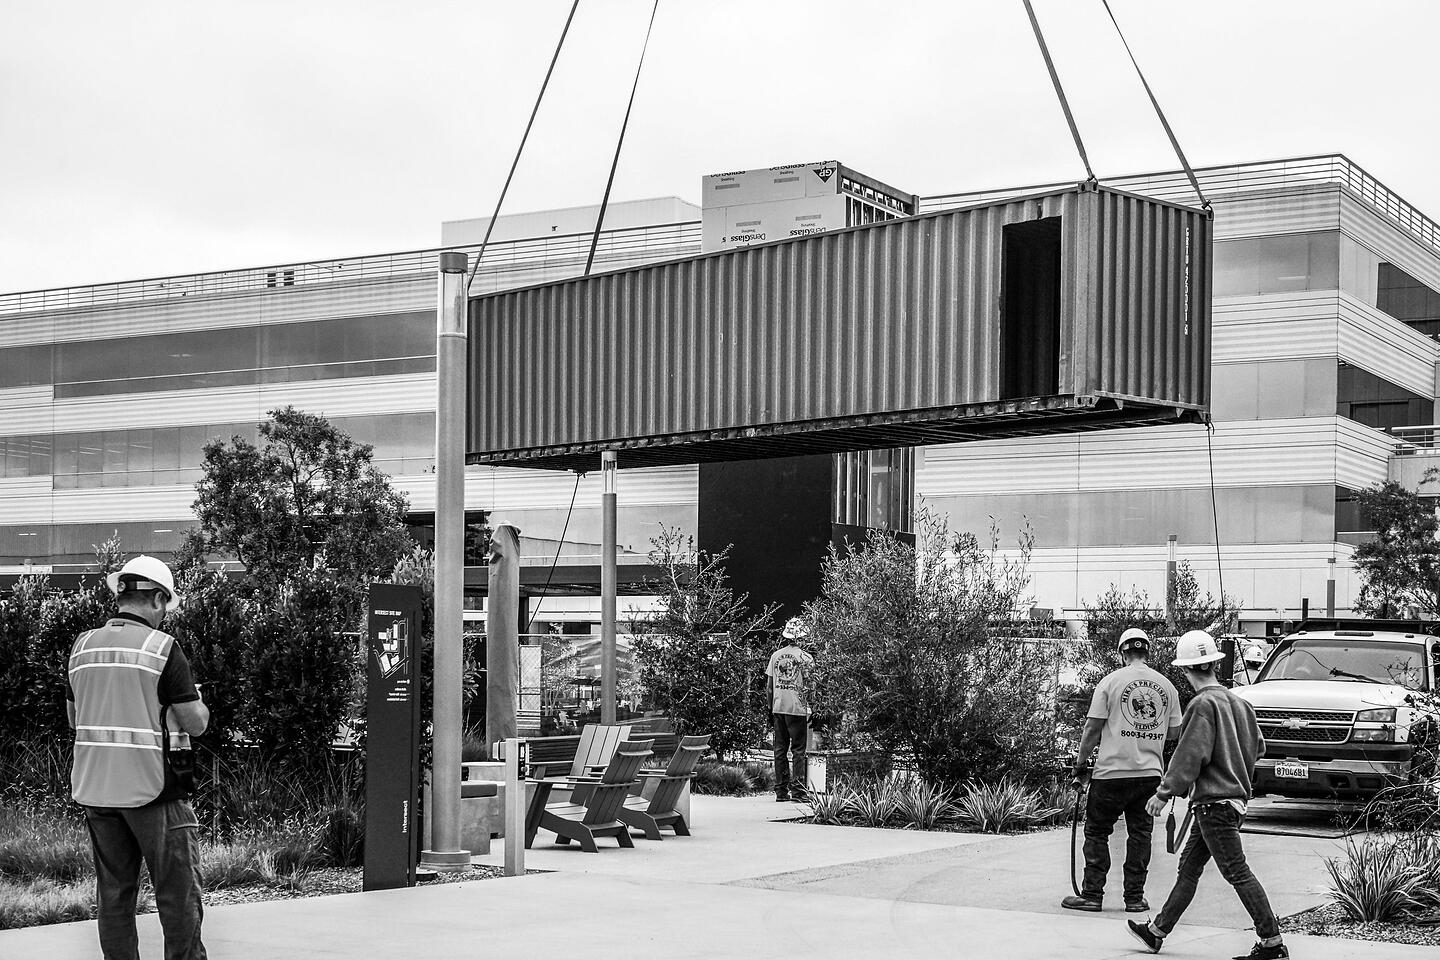 Container Pavilion at Intersect-21-shipping container being craned in